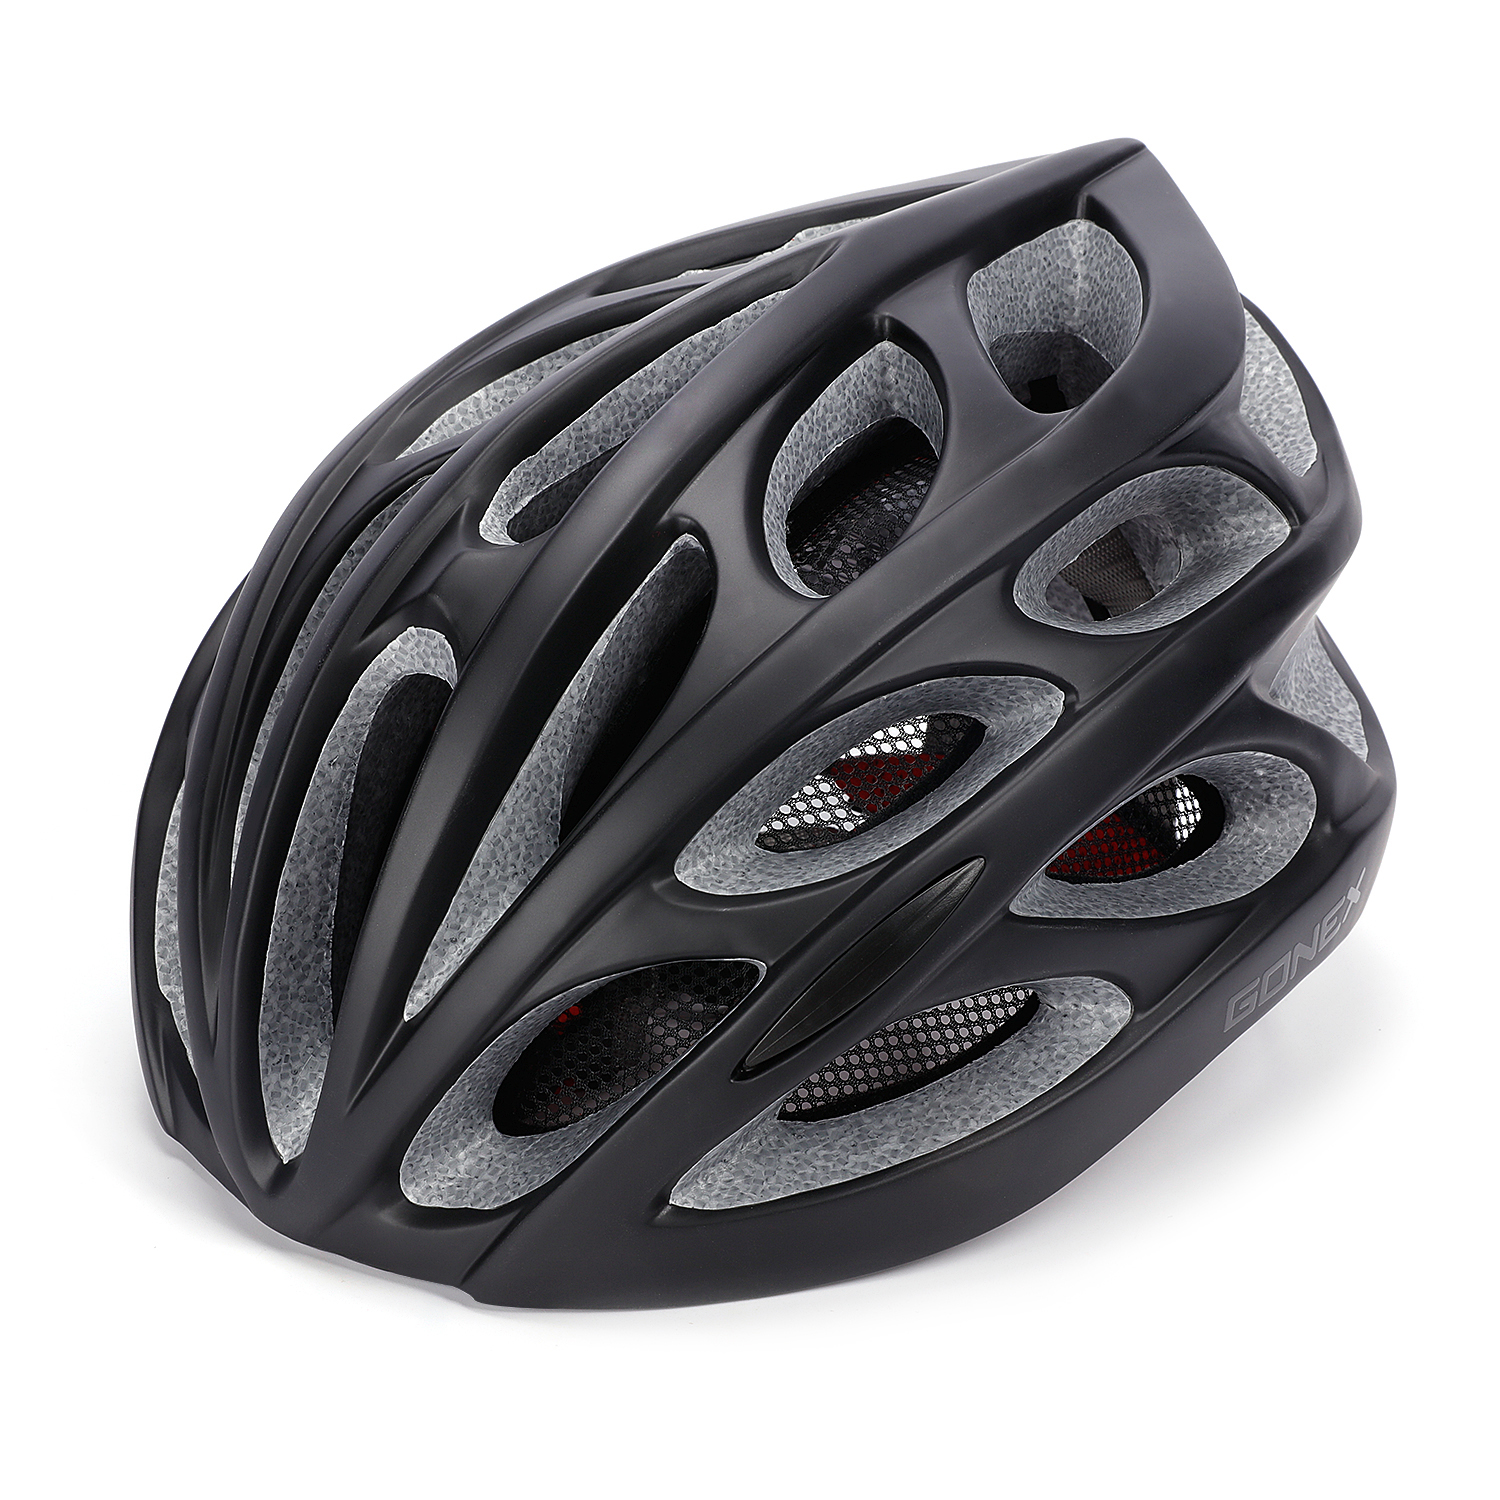 Uniadult Bike Bicycle Riding Cycling Safety Road